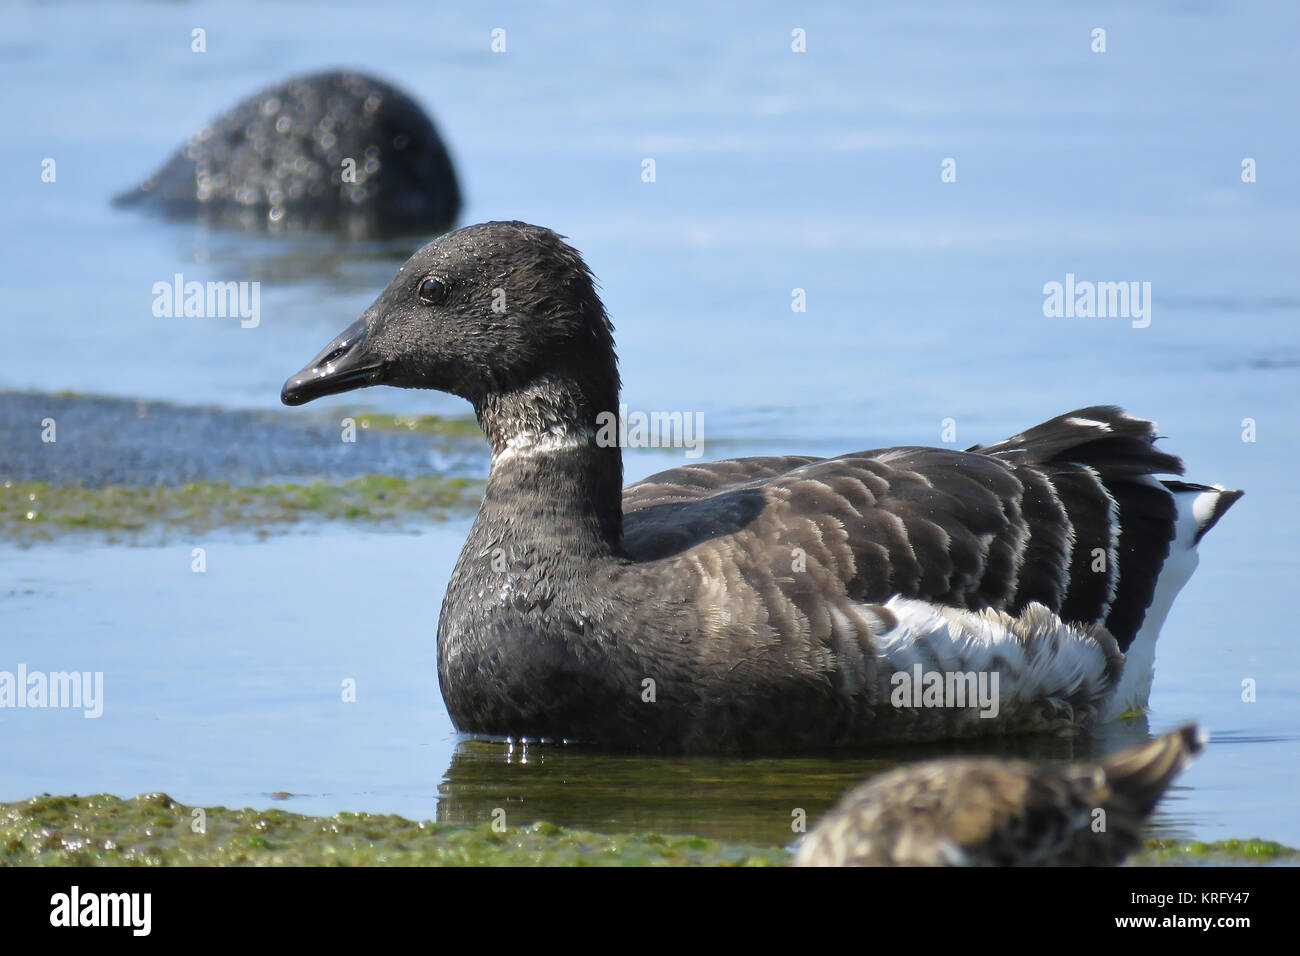 Black brant or Pacific brent goose (Branta bernicla nigricans) on Big Island, Hawaii - Stock Image